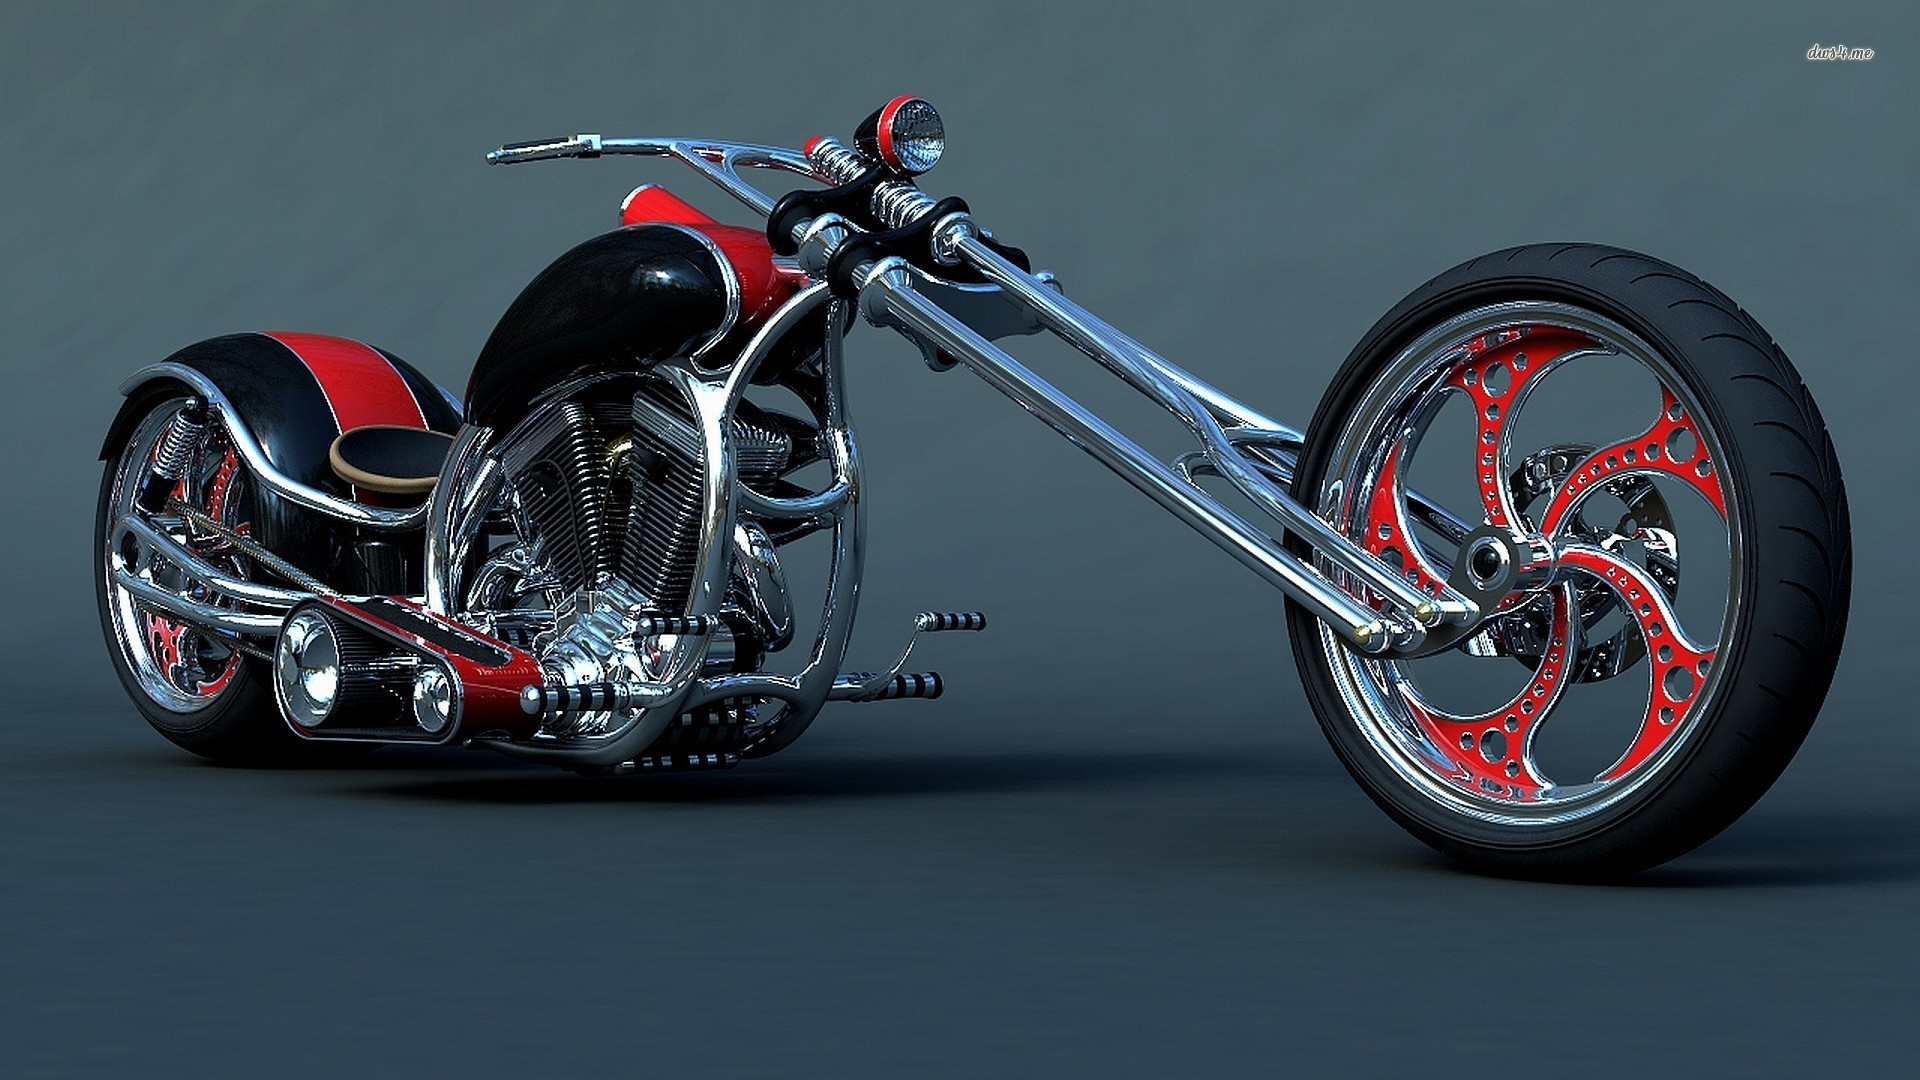 1920x1080 harley davidson wallpaper custom chopper